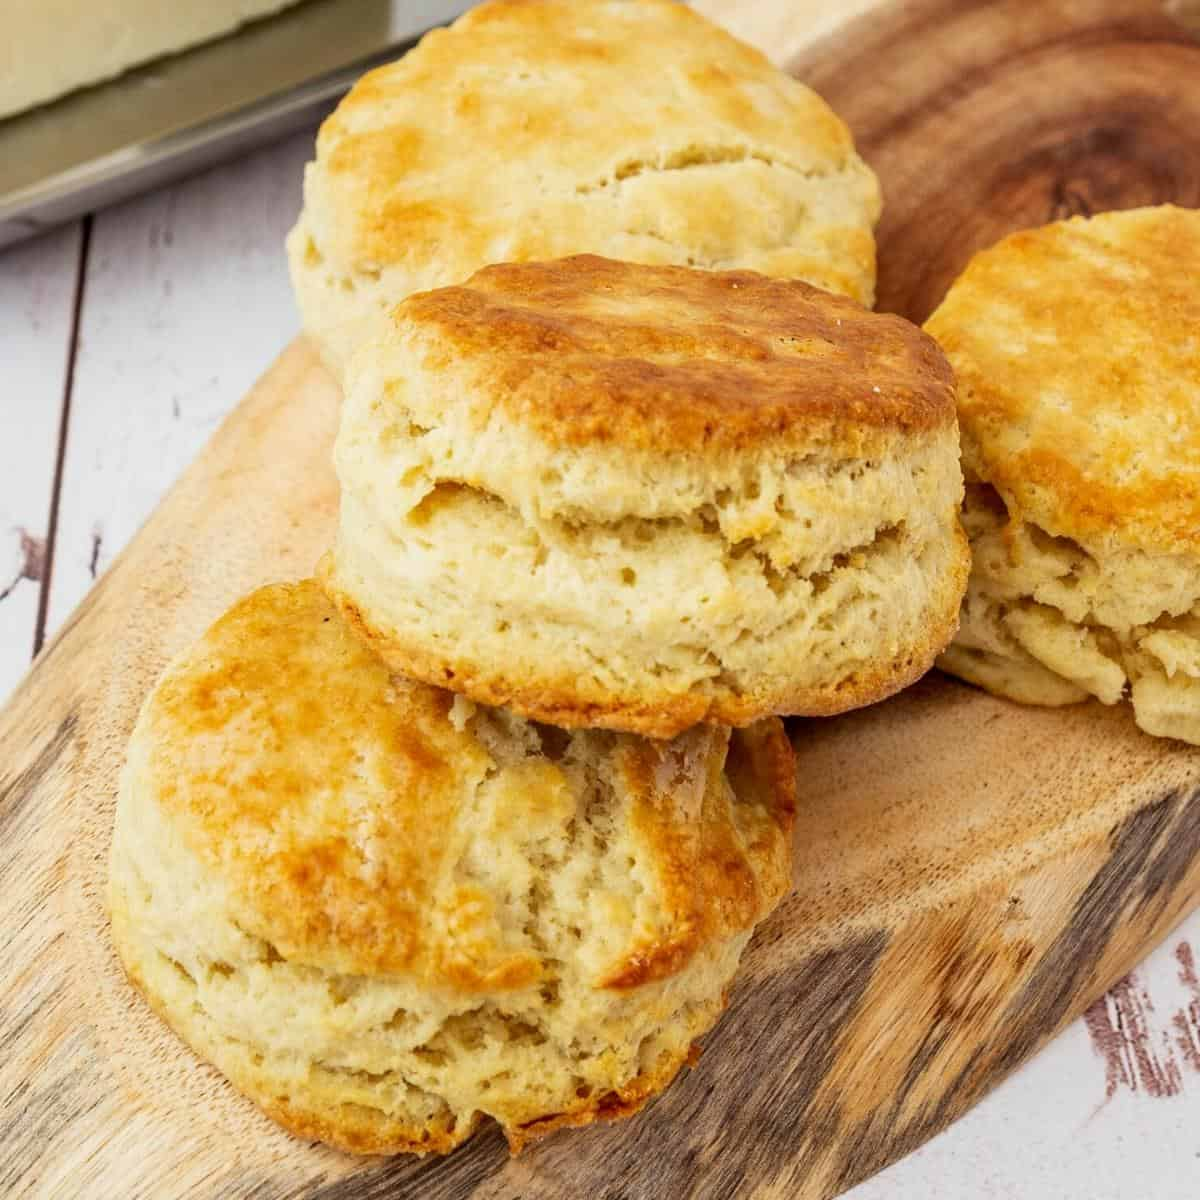 Homemade from scratch biscuits on a table.